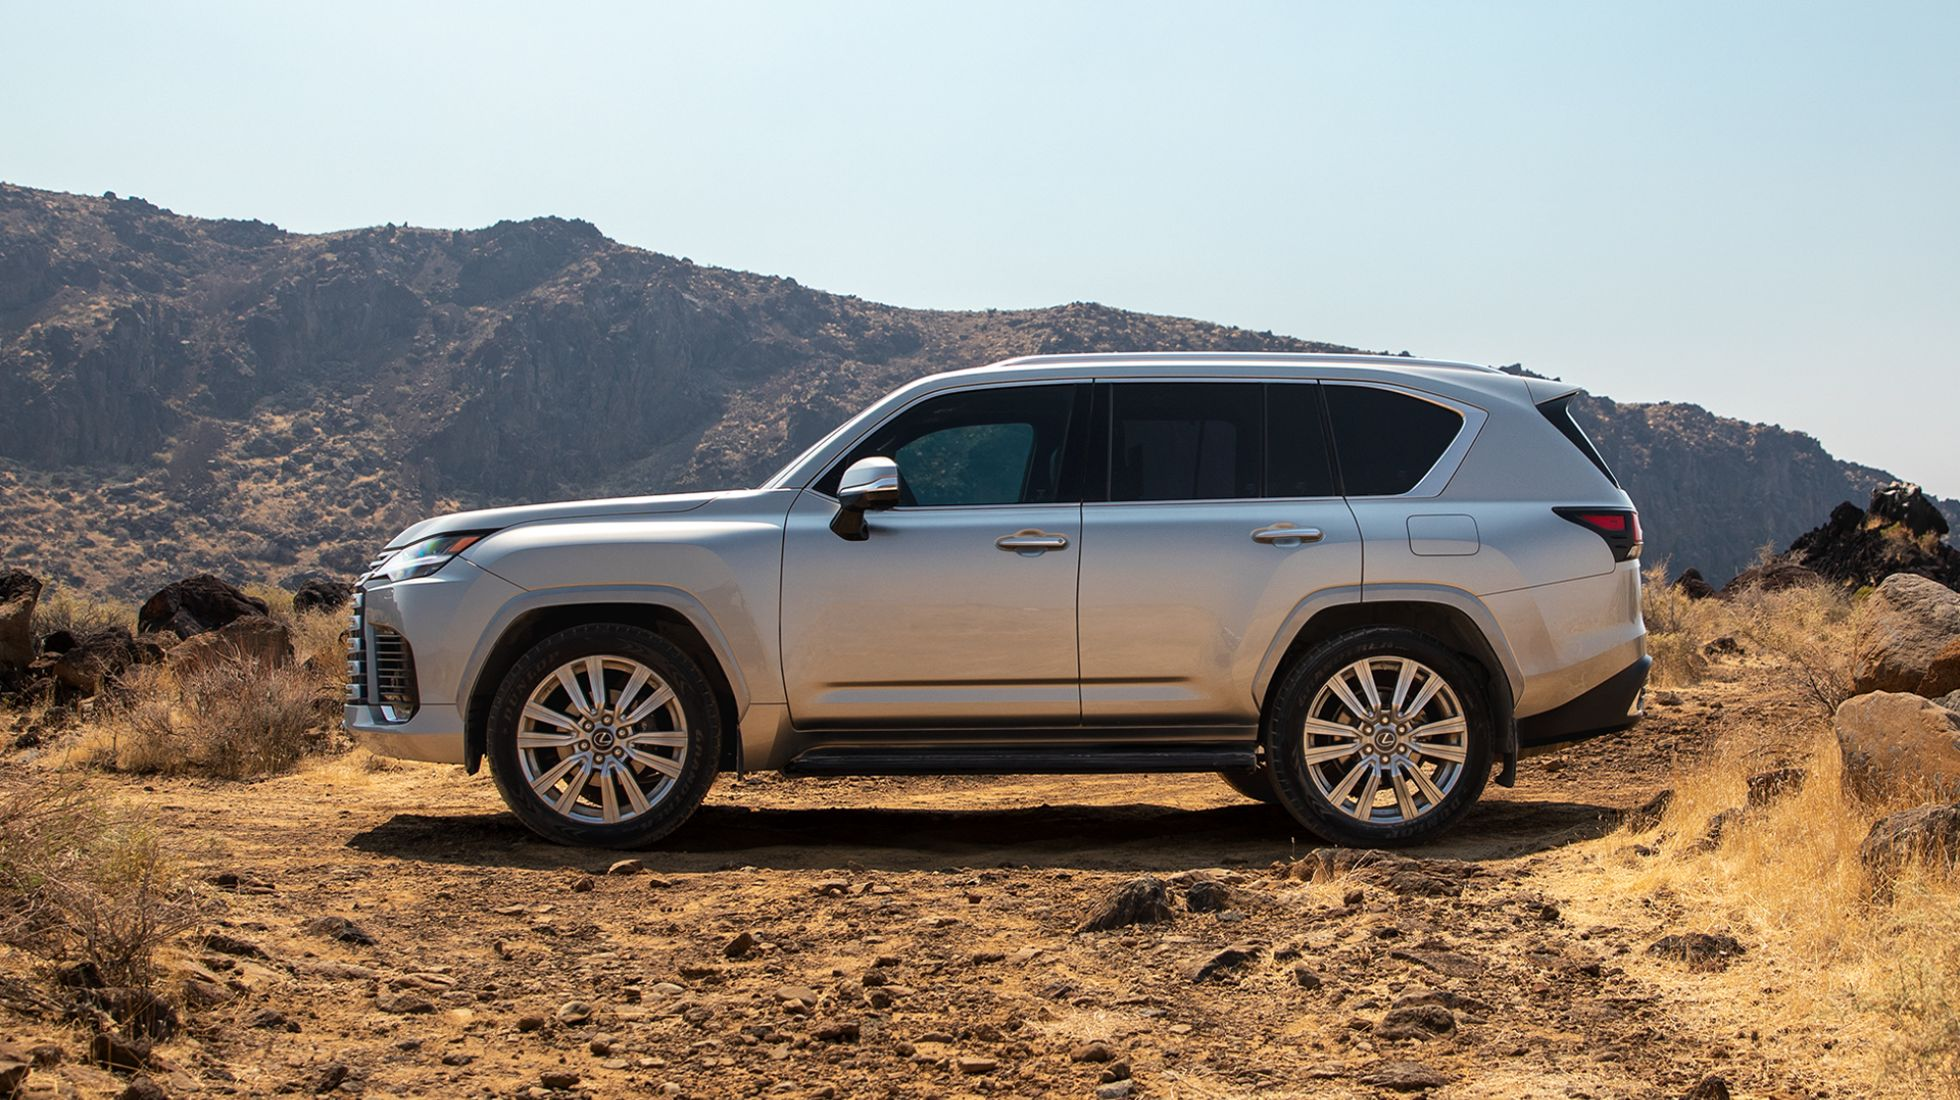 Lexus once again brings luxury to the 4x4 trail